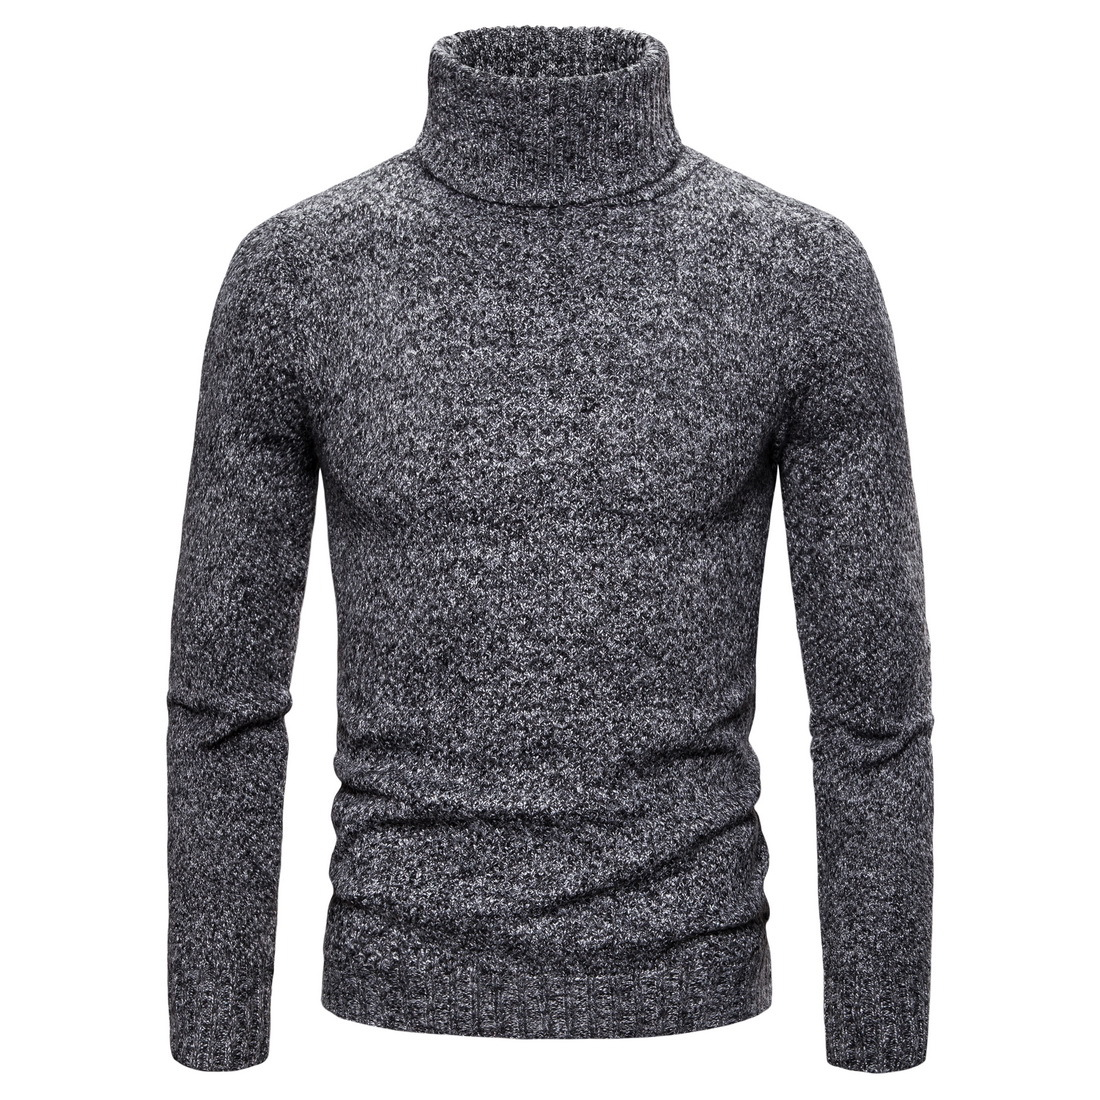 Sweater Men New Autumn/winter Slim Solid Colour Turtleneck Pullovers Knit Sweaters Pull Homme